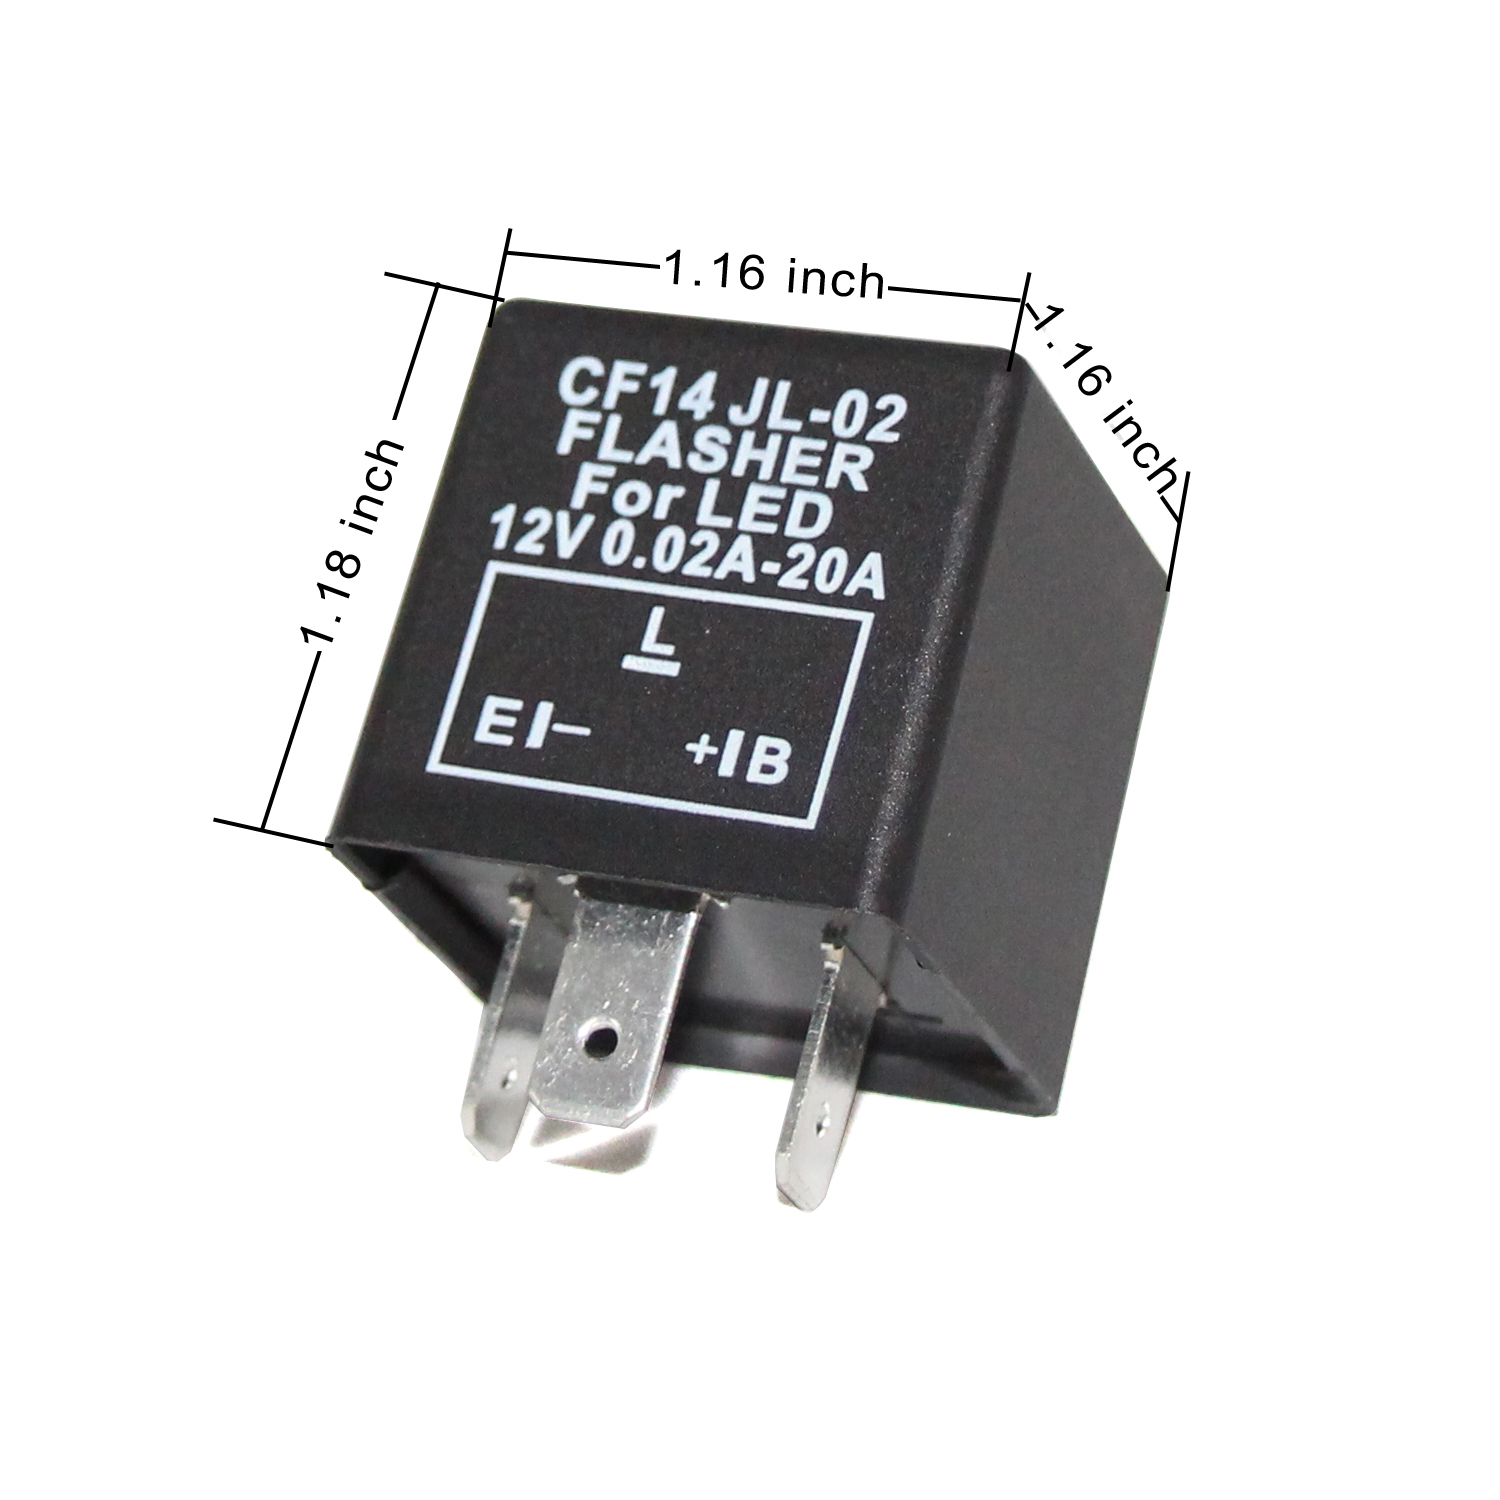 Automotive CF14 LED Flasher Relay Replacement for Cars, SUVs